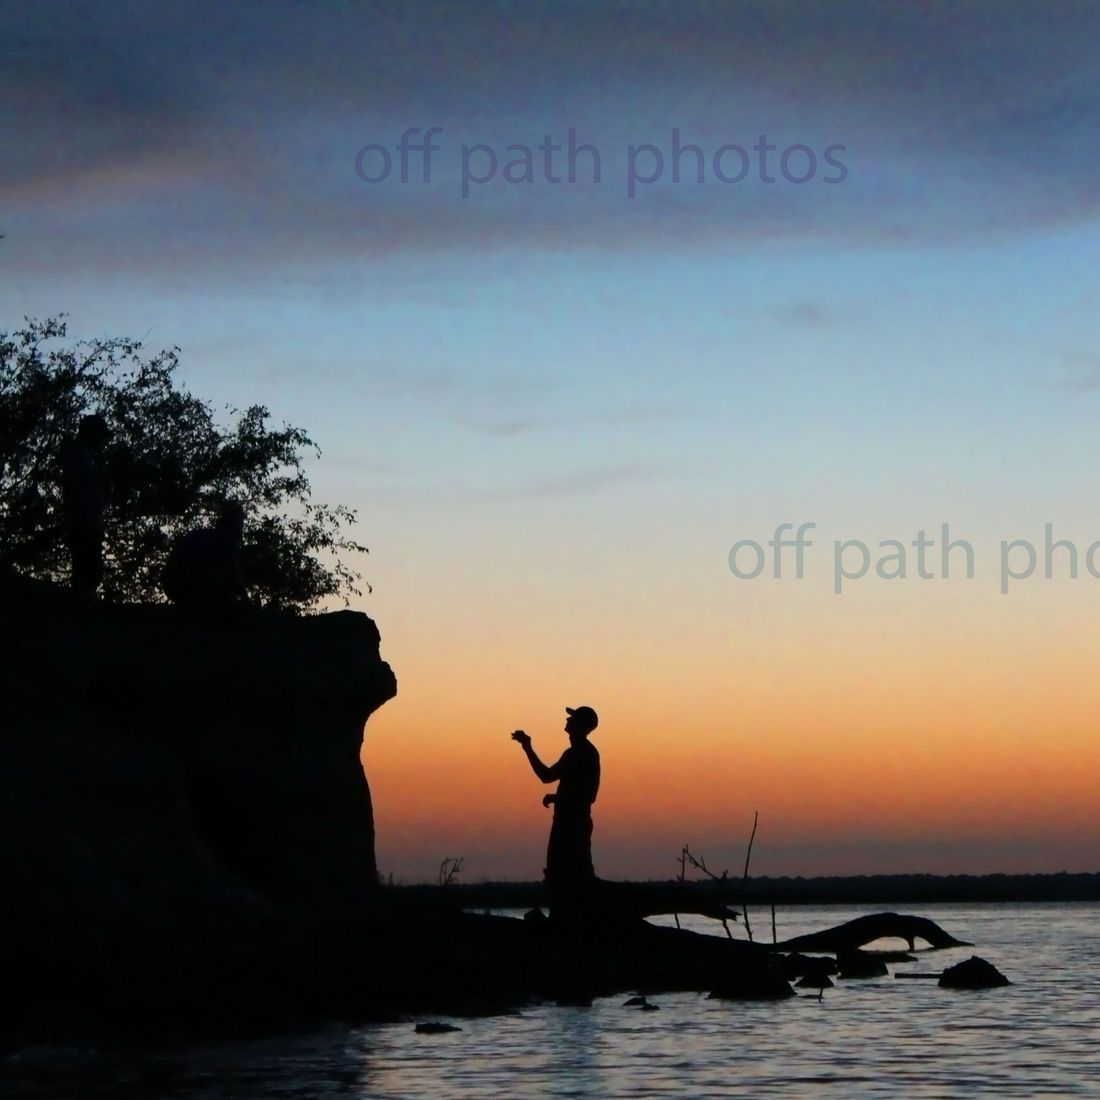 photography, lake, fishing, people, sunset, water, nature, evening, camping, quite